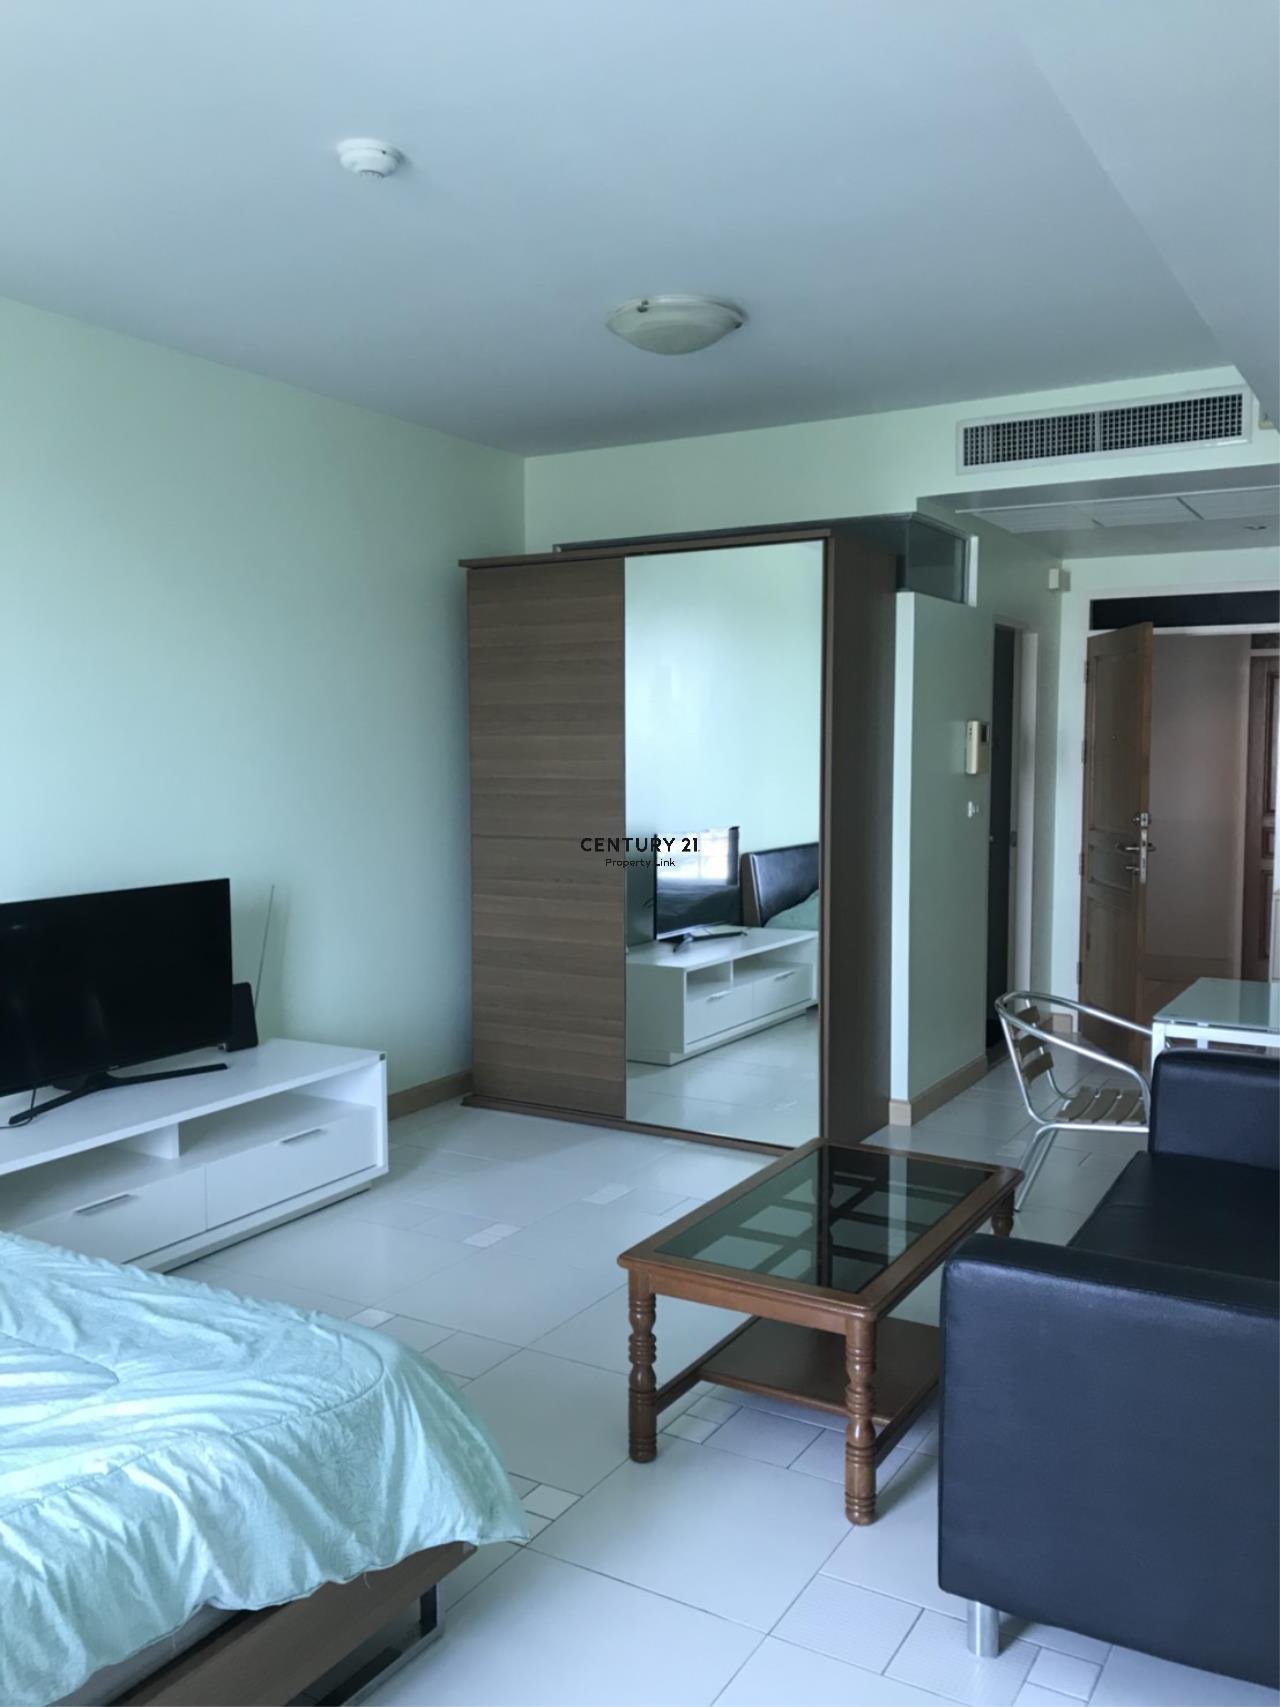 Century21 Property Link Agency's 38-CC-61548 Room for Rent Supalai River Place Condominium  Fully Furnished High level City view near BTS Krung Thon Buri I-con siam 1